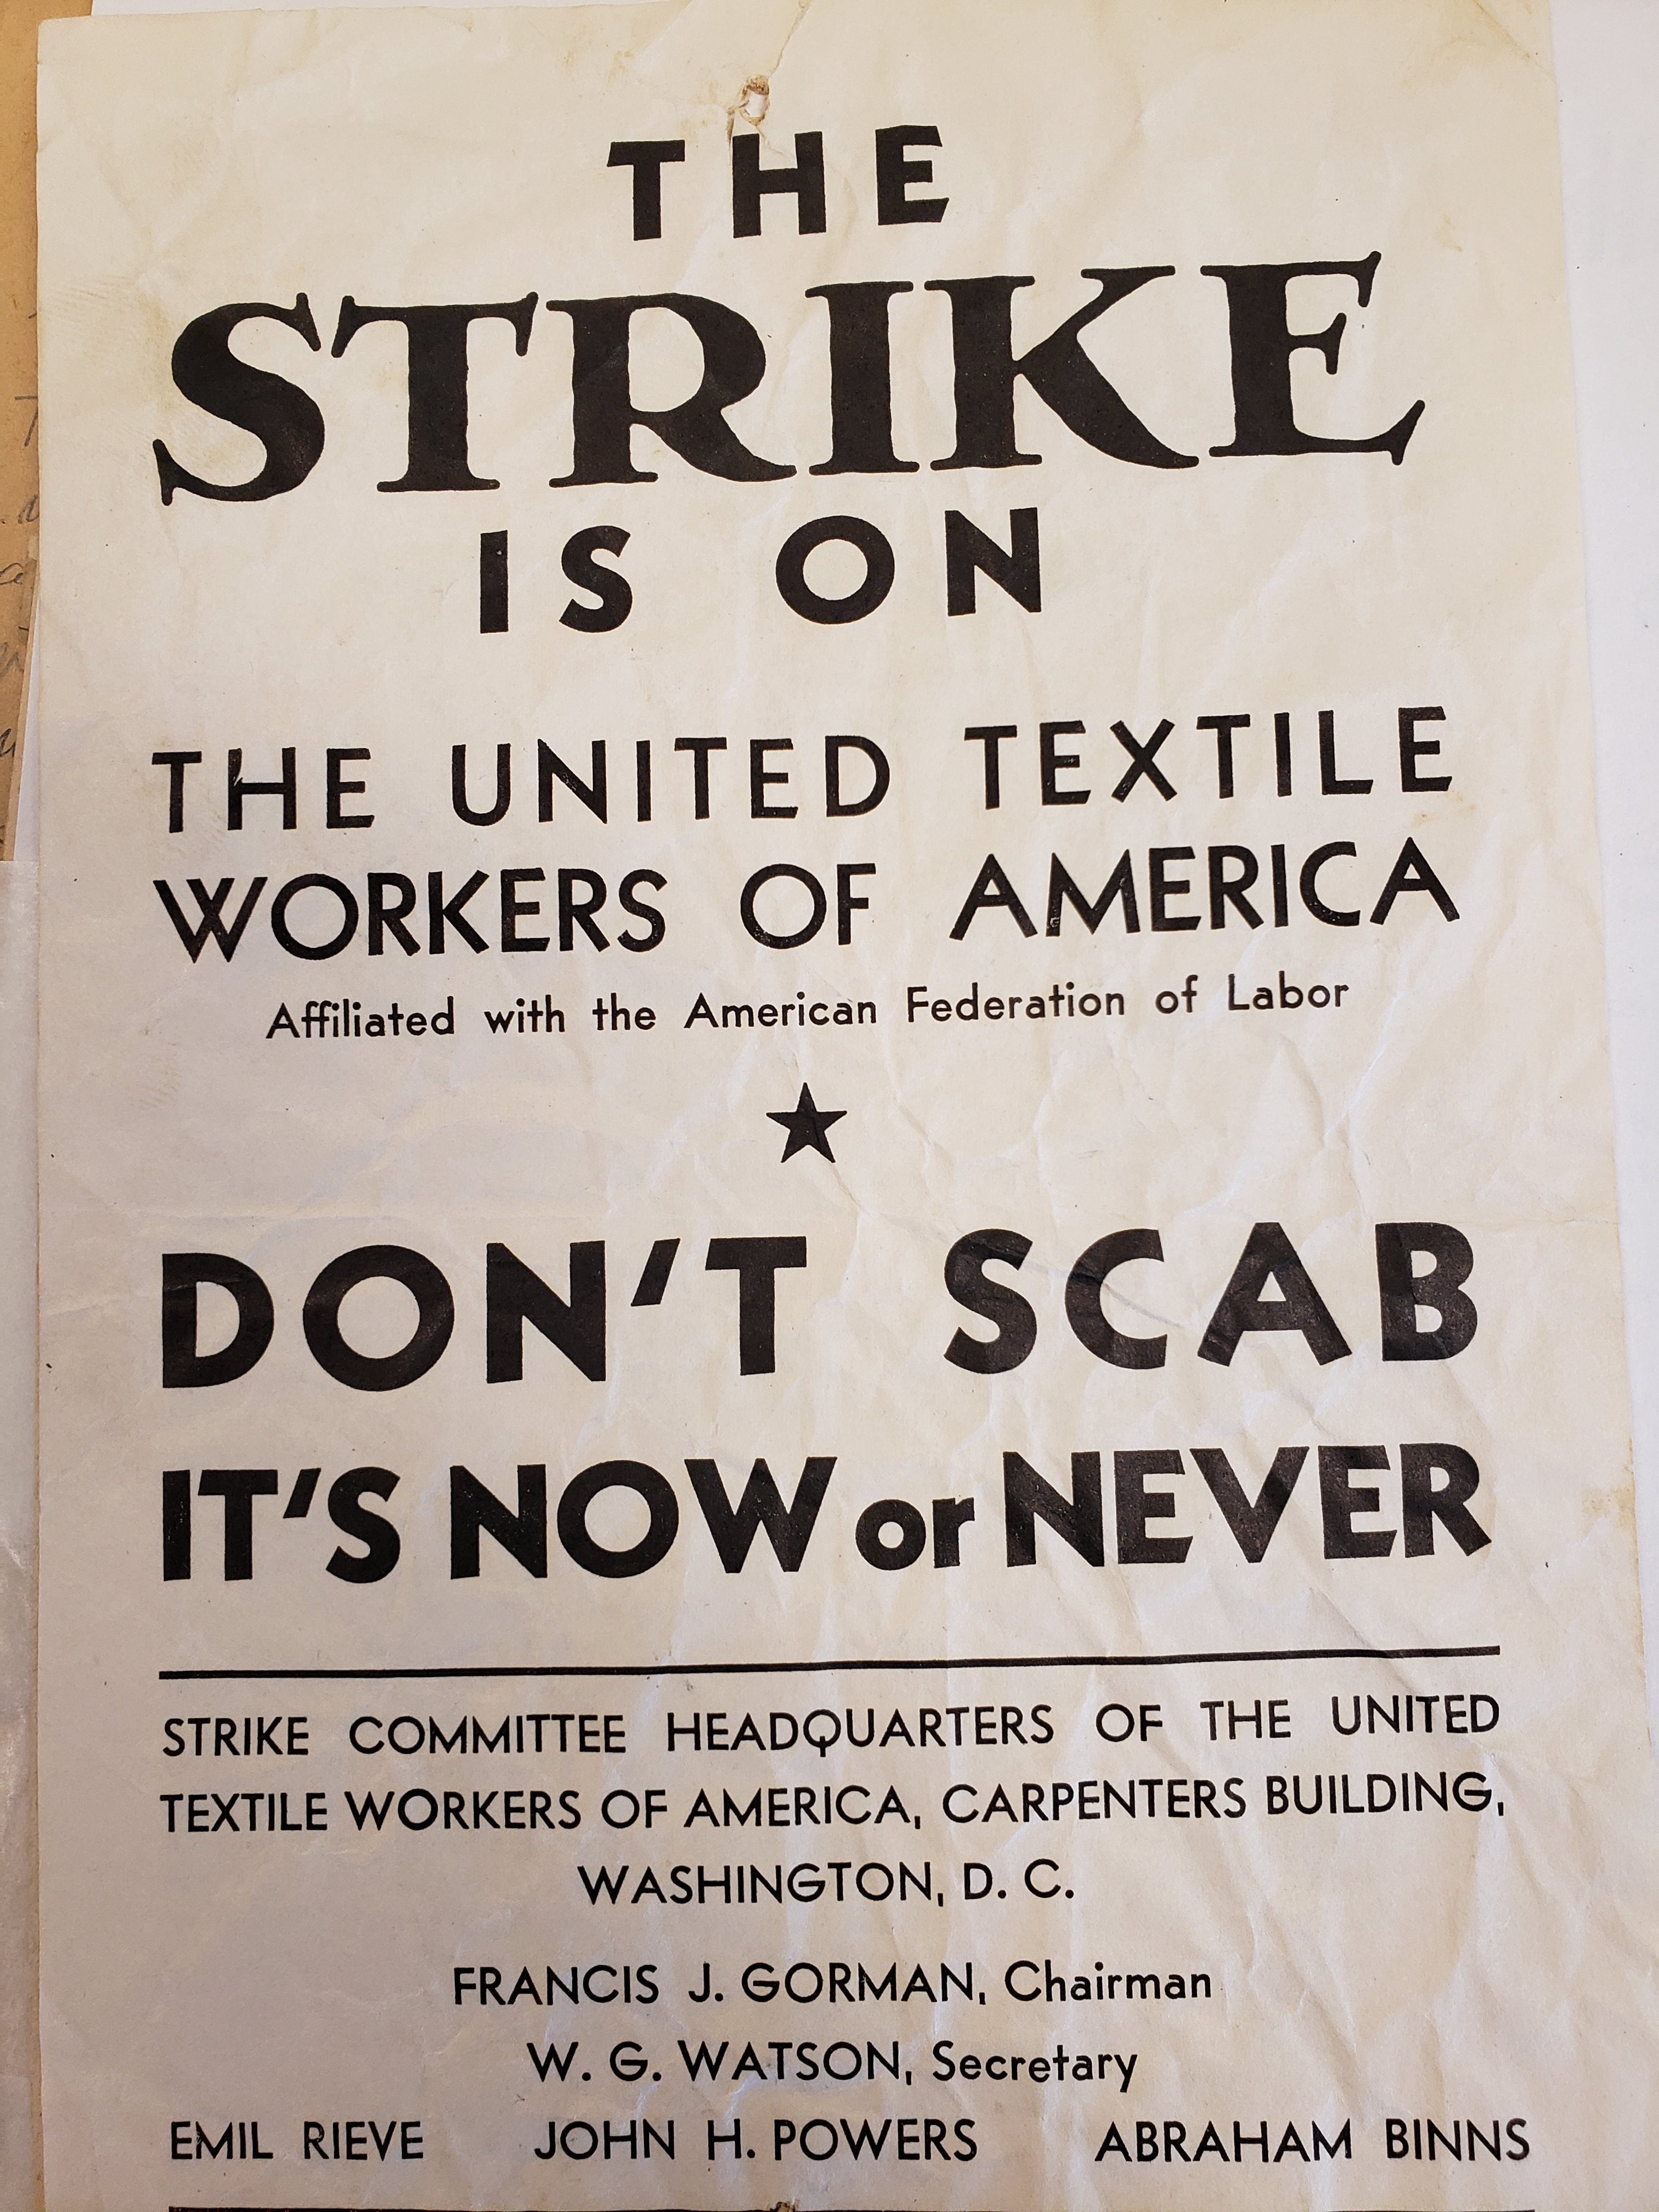 TWUA pamphlet for Harmony Grove mill strikers in Commerce, GA